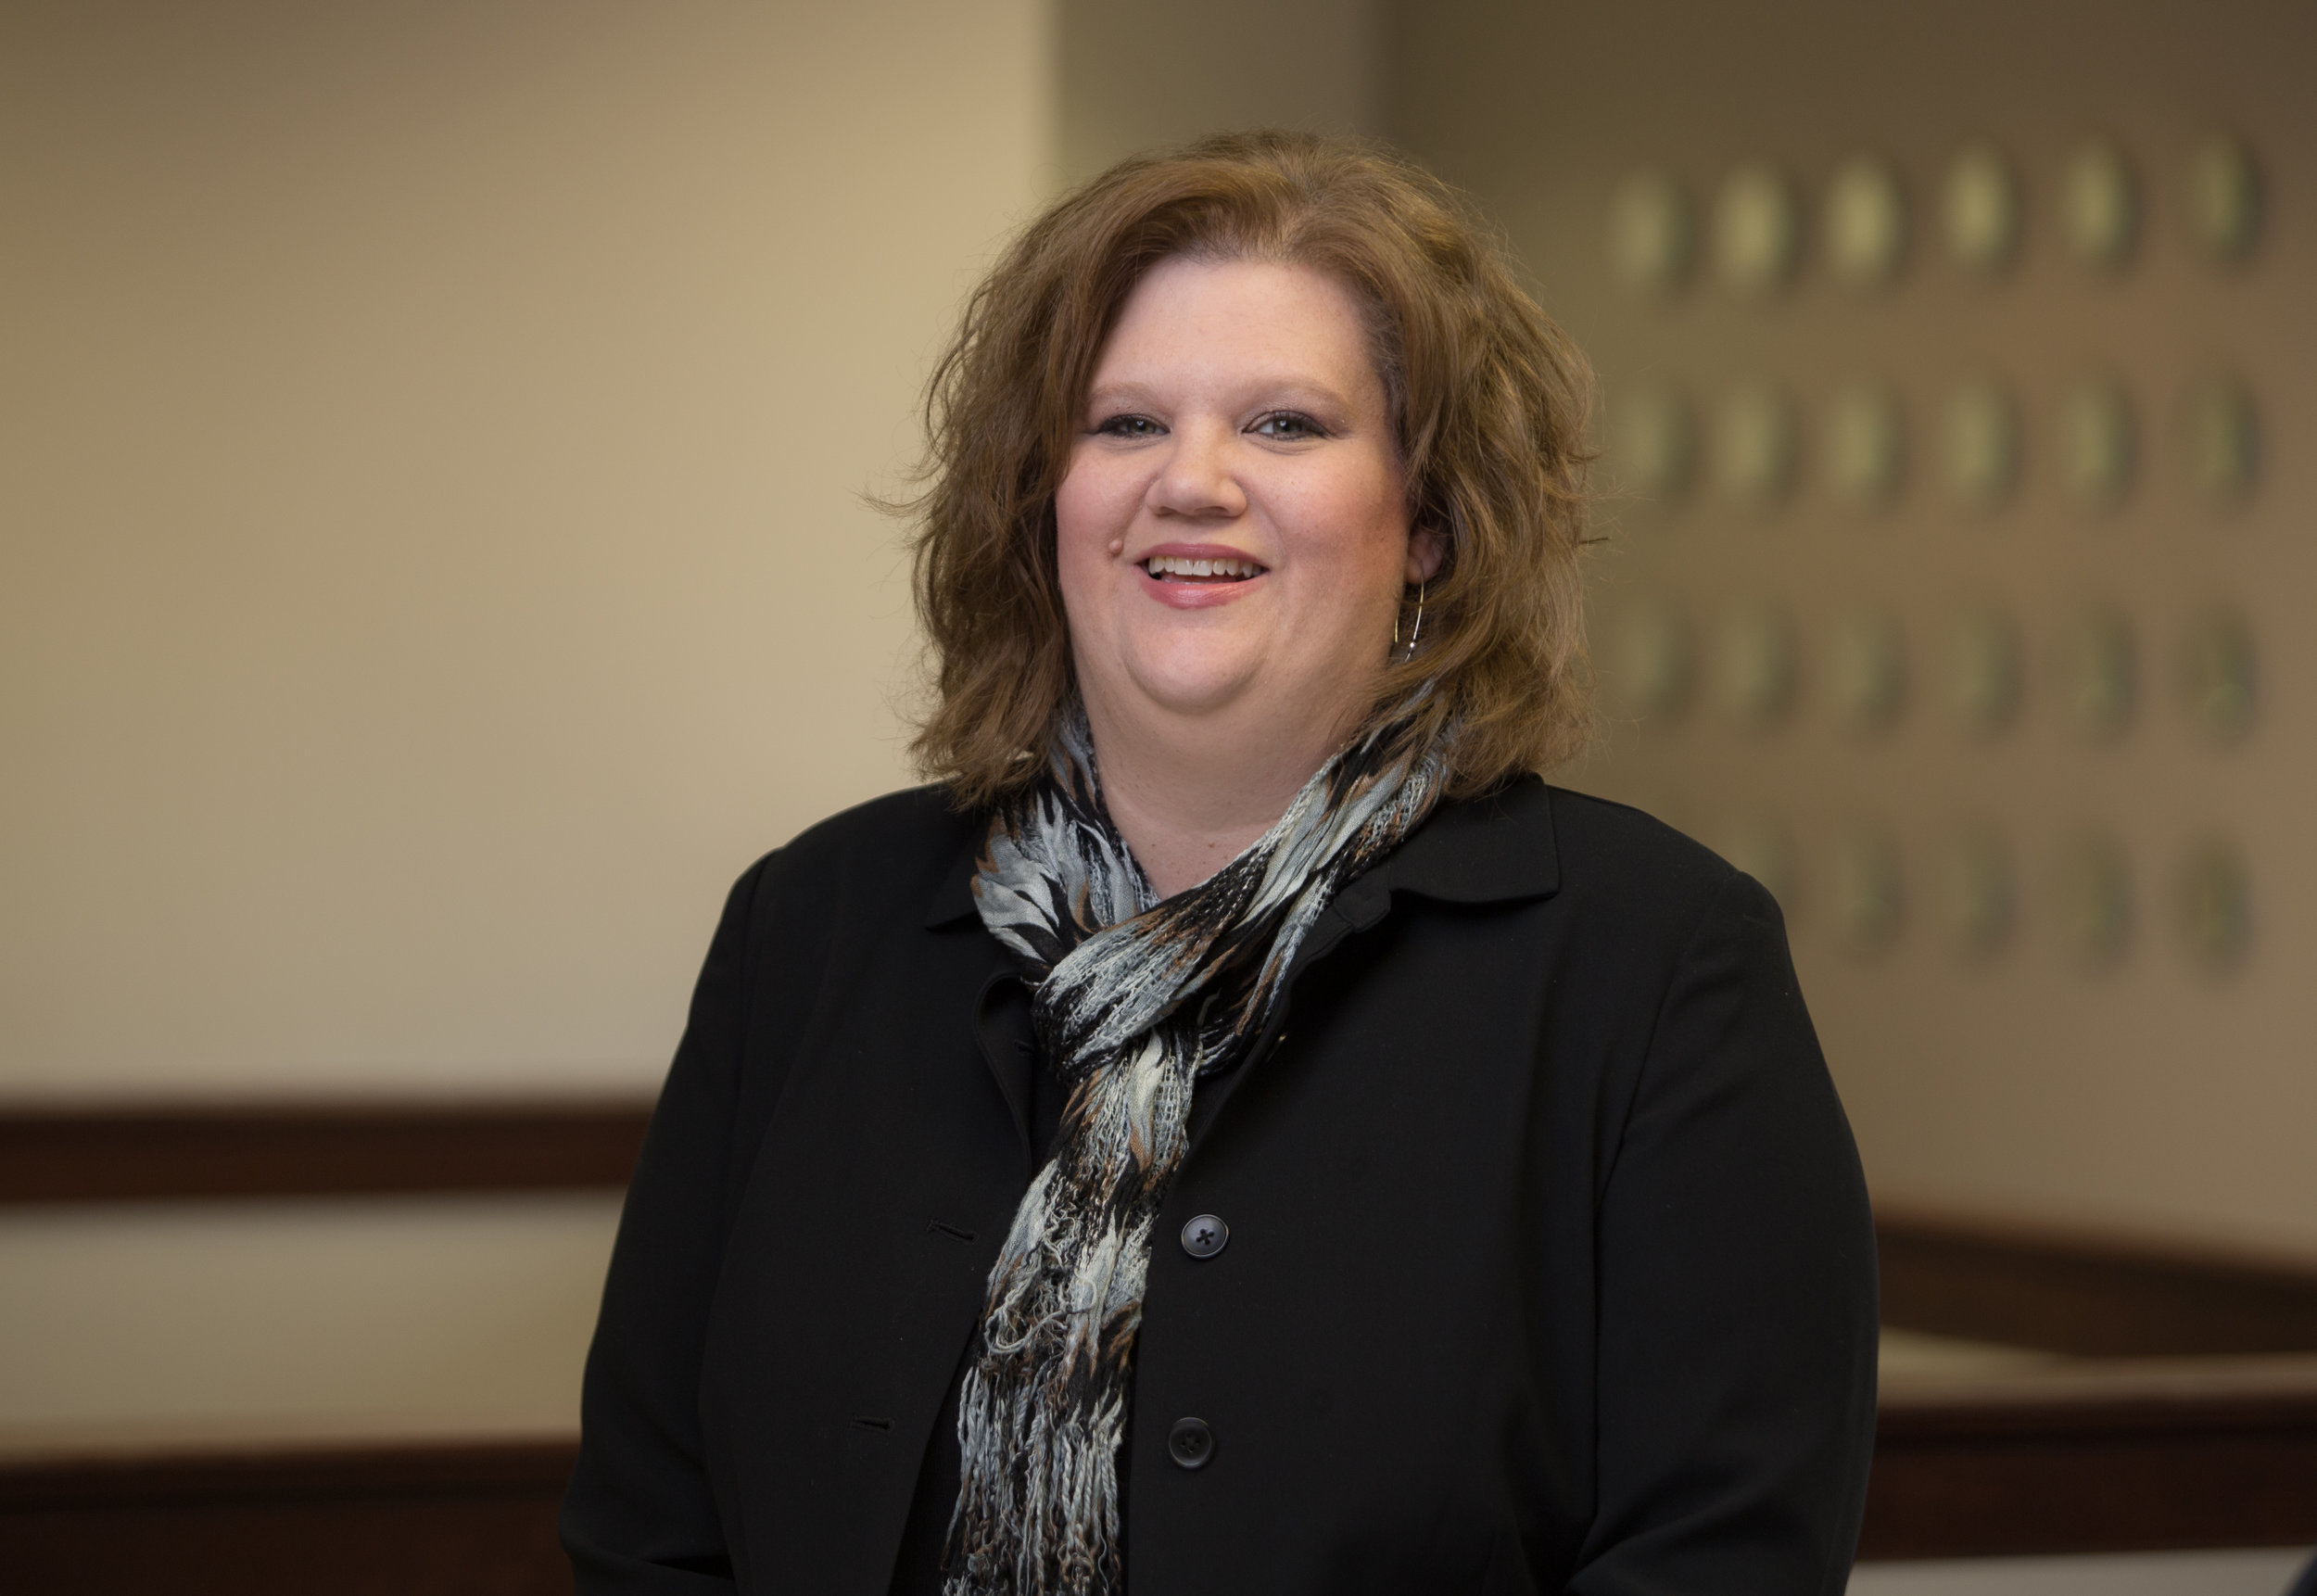 Jill Hulum - Customer Service RepresentativeJill lives in Grand Forks, ND. She joined the Vaaler team in March of 2019. She has her degree in Science and Social Work. In her free time she enjoys reading, listening to music, and being with her family.